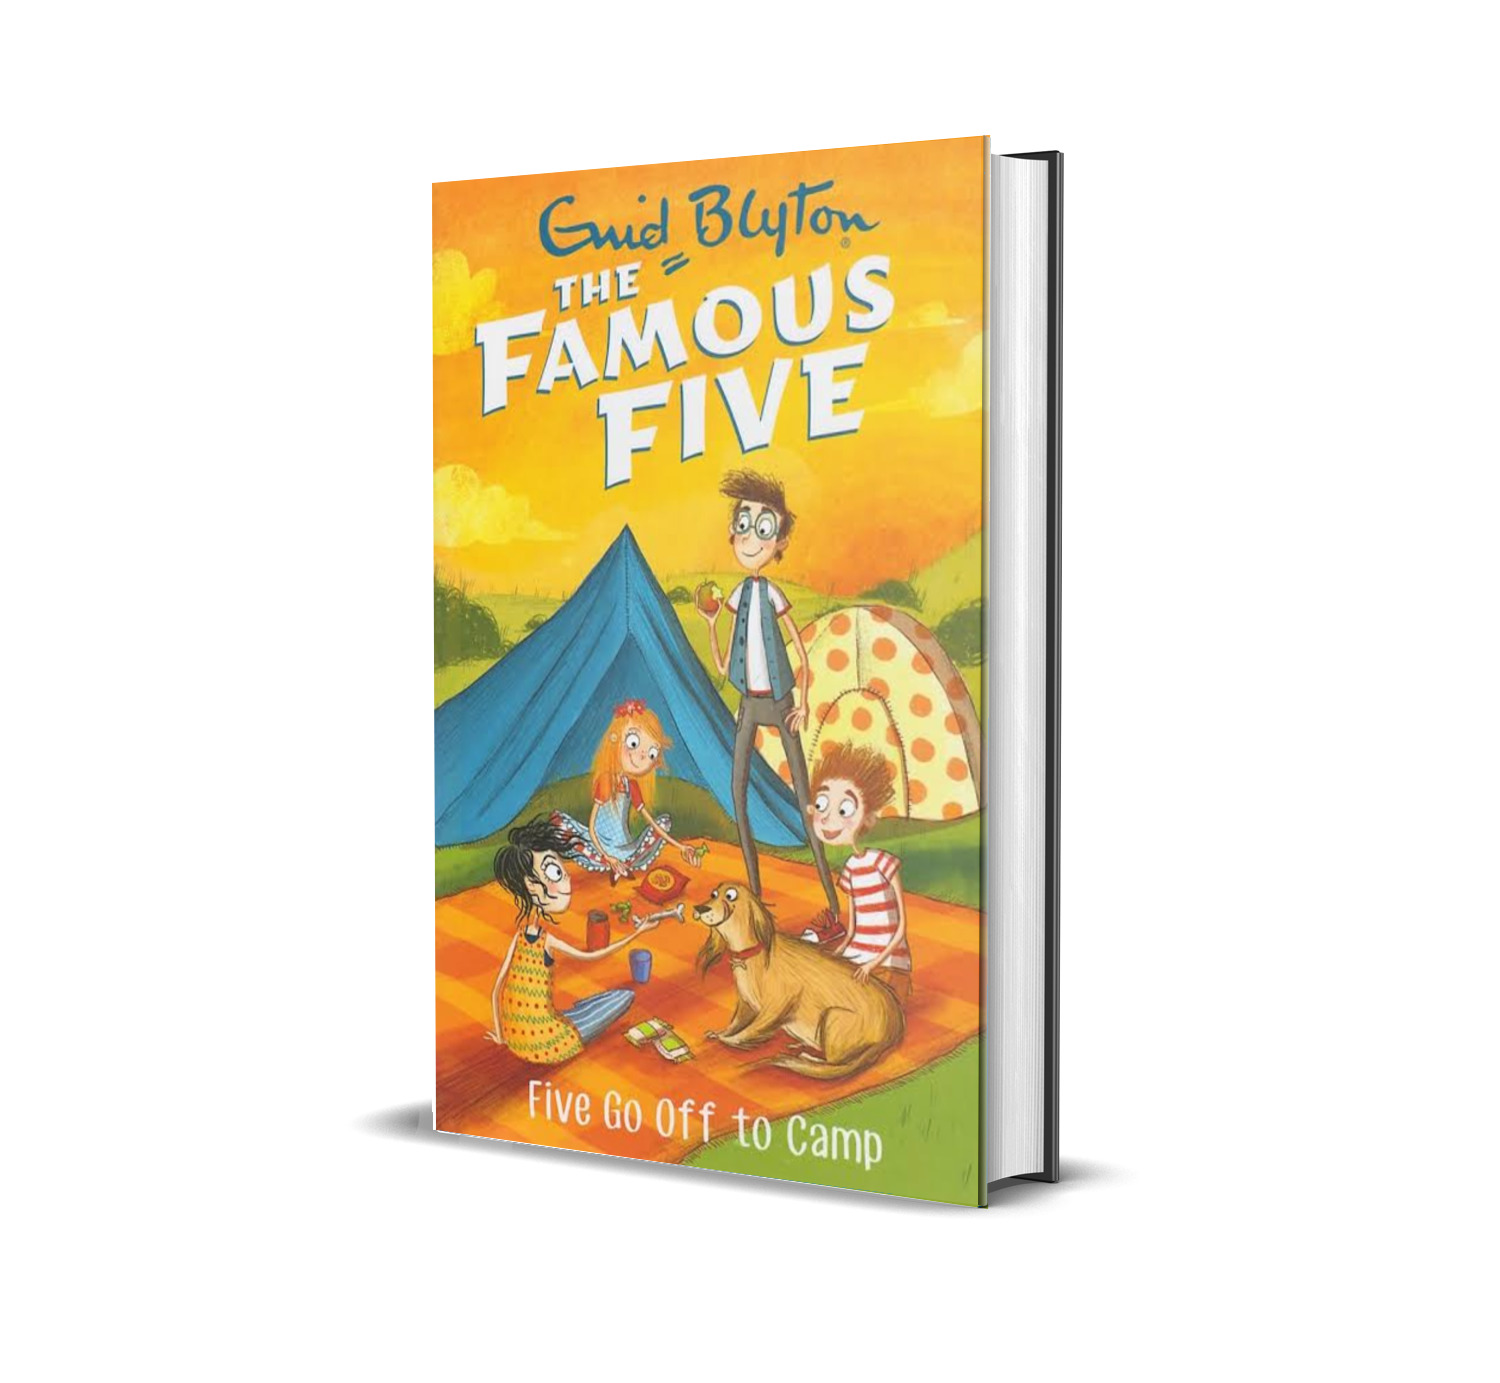 Five go off to camp:the famous five book 7- Enid Blyton